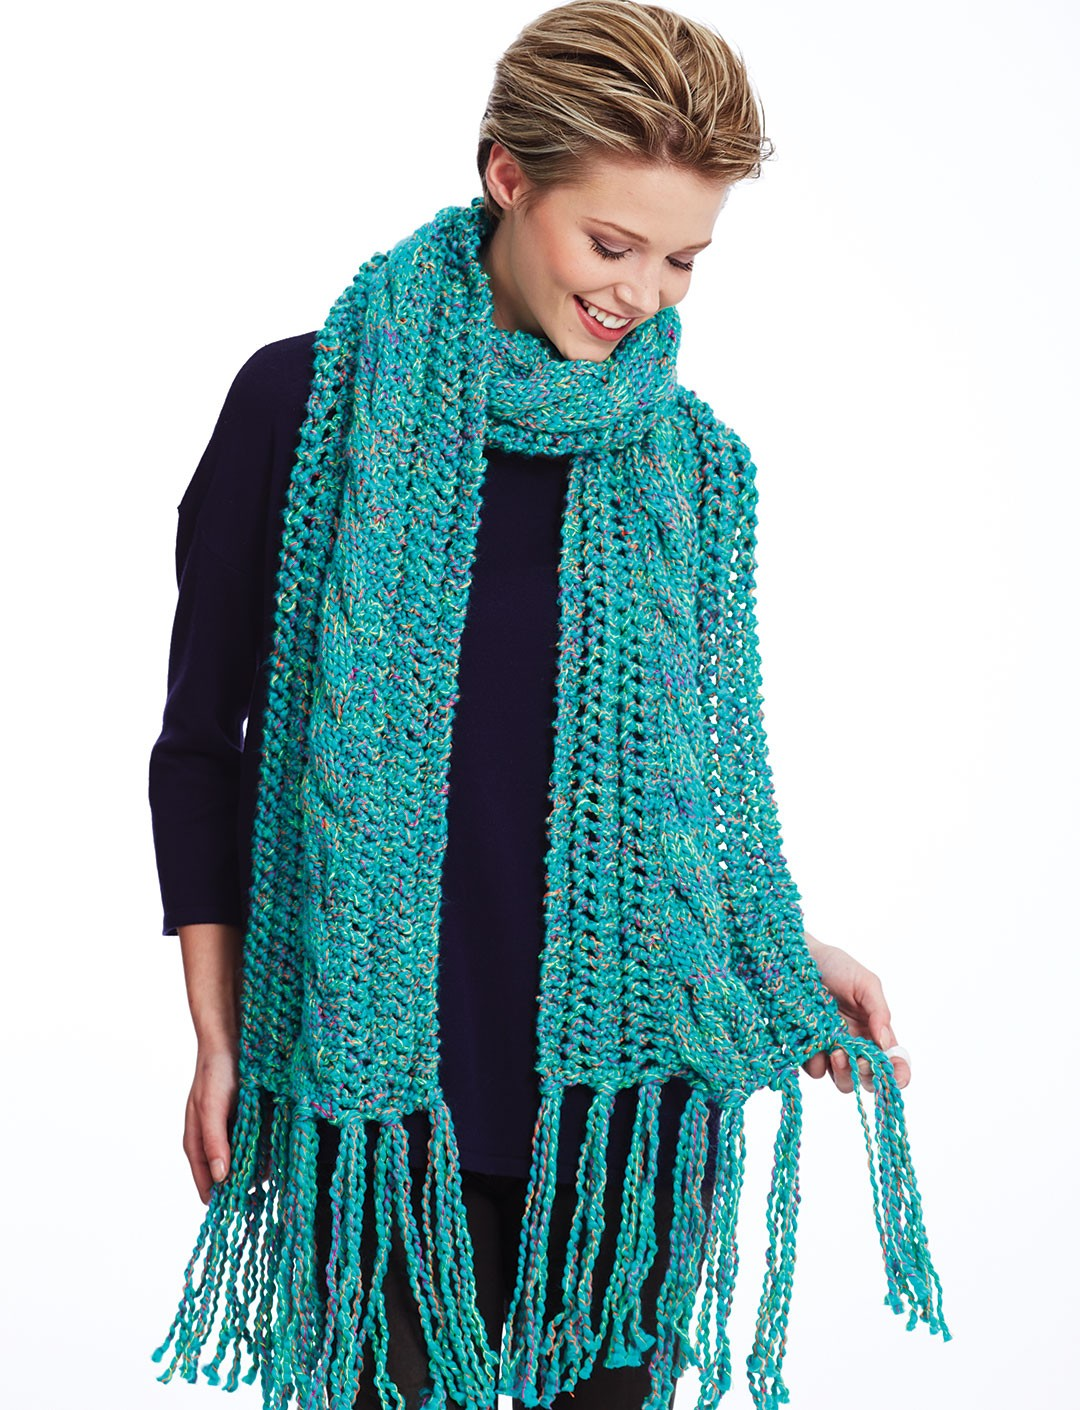 Bernat Ladders and Cables Scarf, Knit Pattern   Yarnspirations